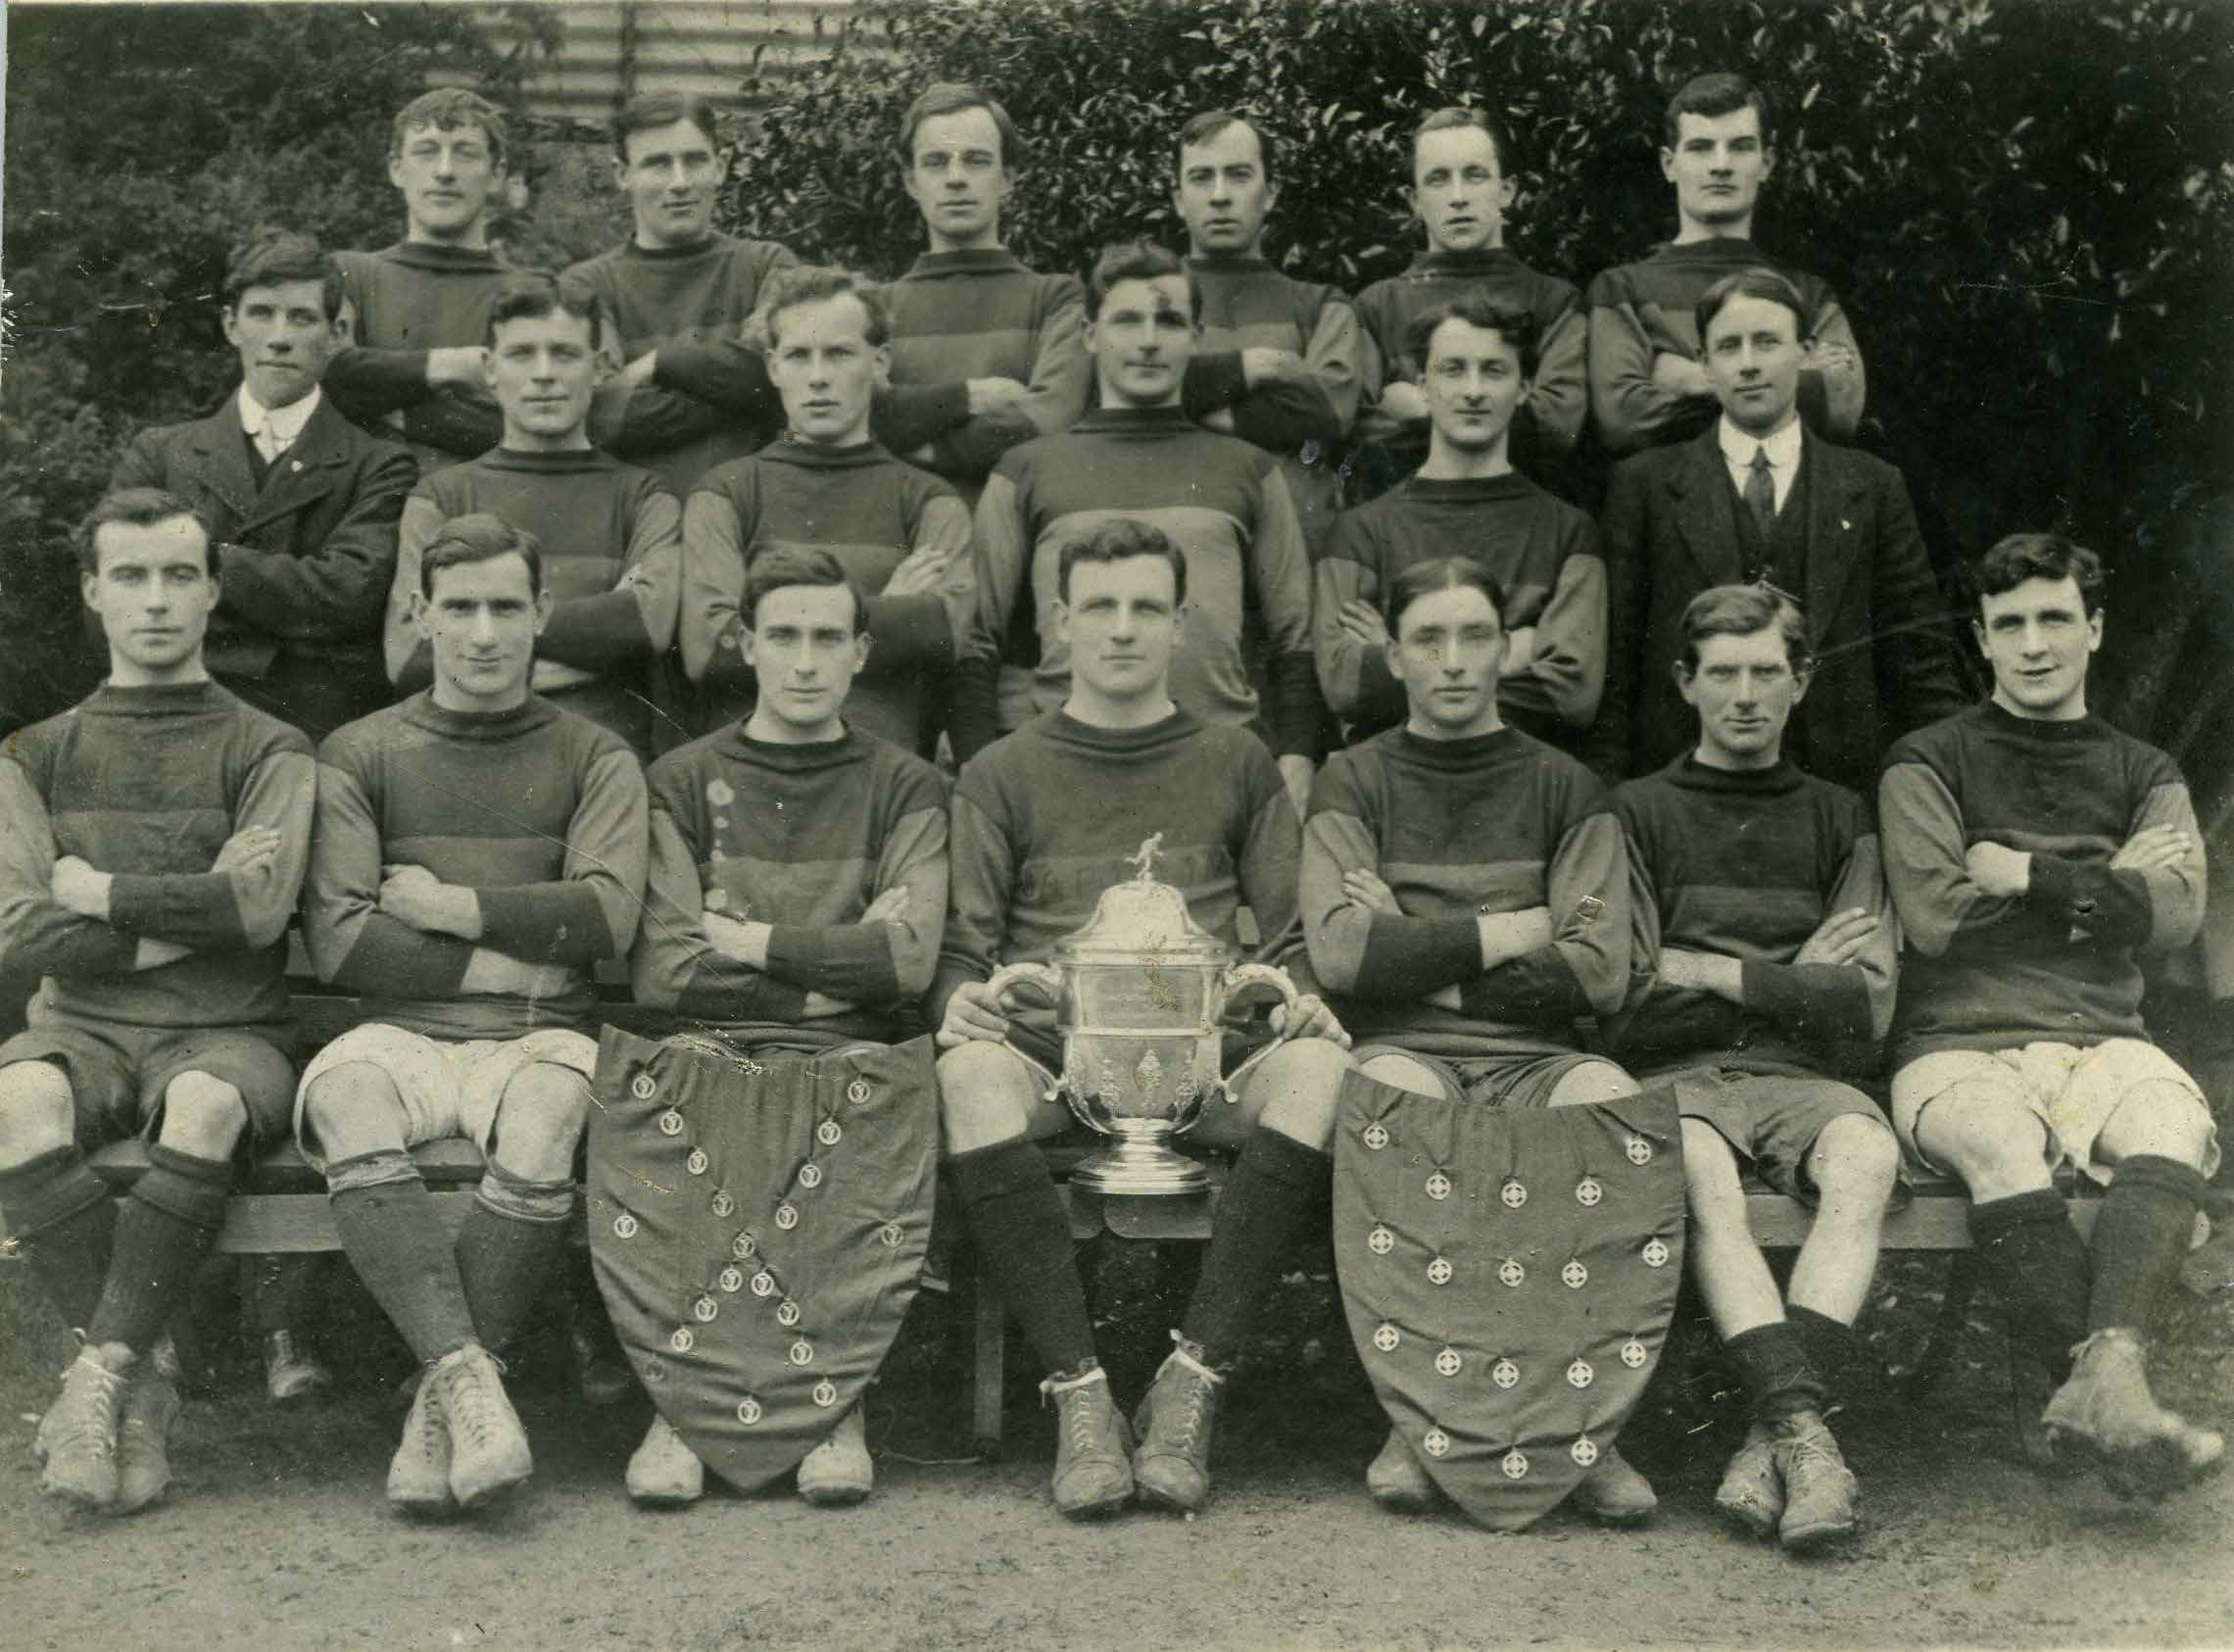 Wexford (Blues & Whites) 1916 Football All-Ireland Champions